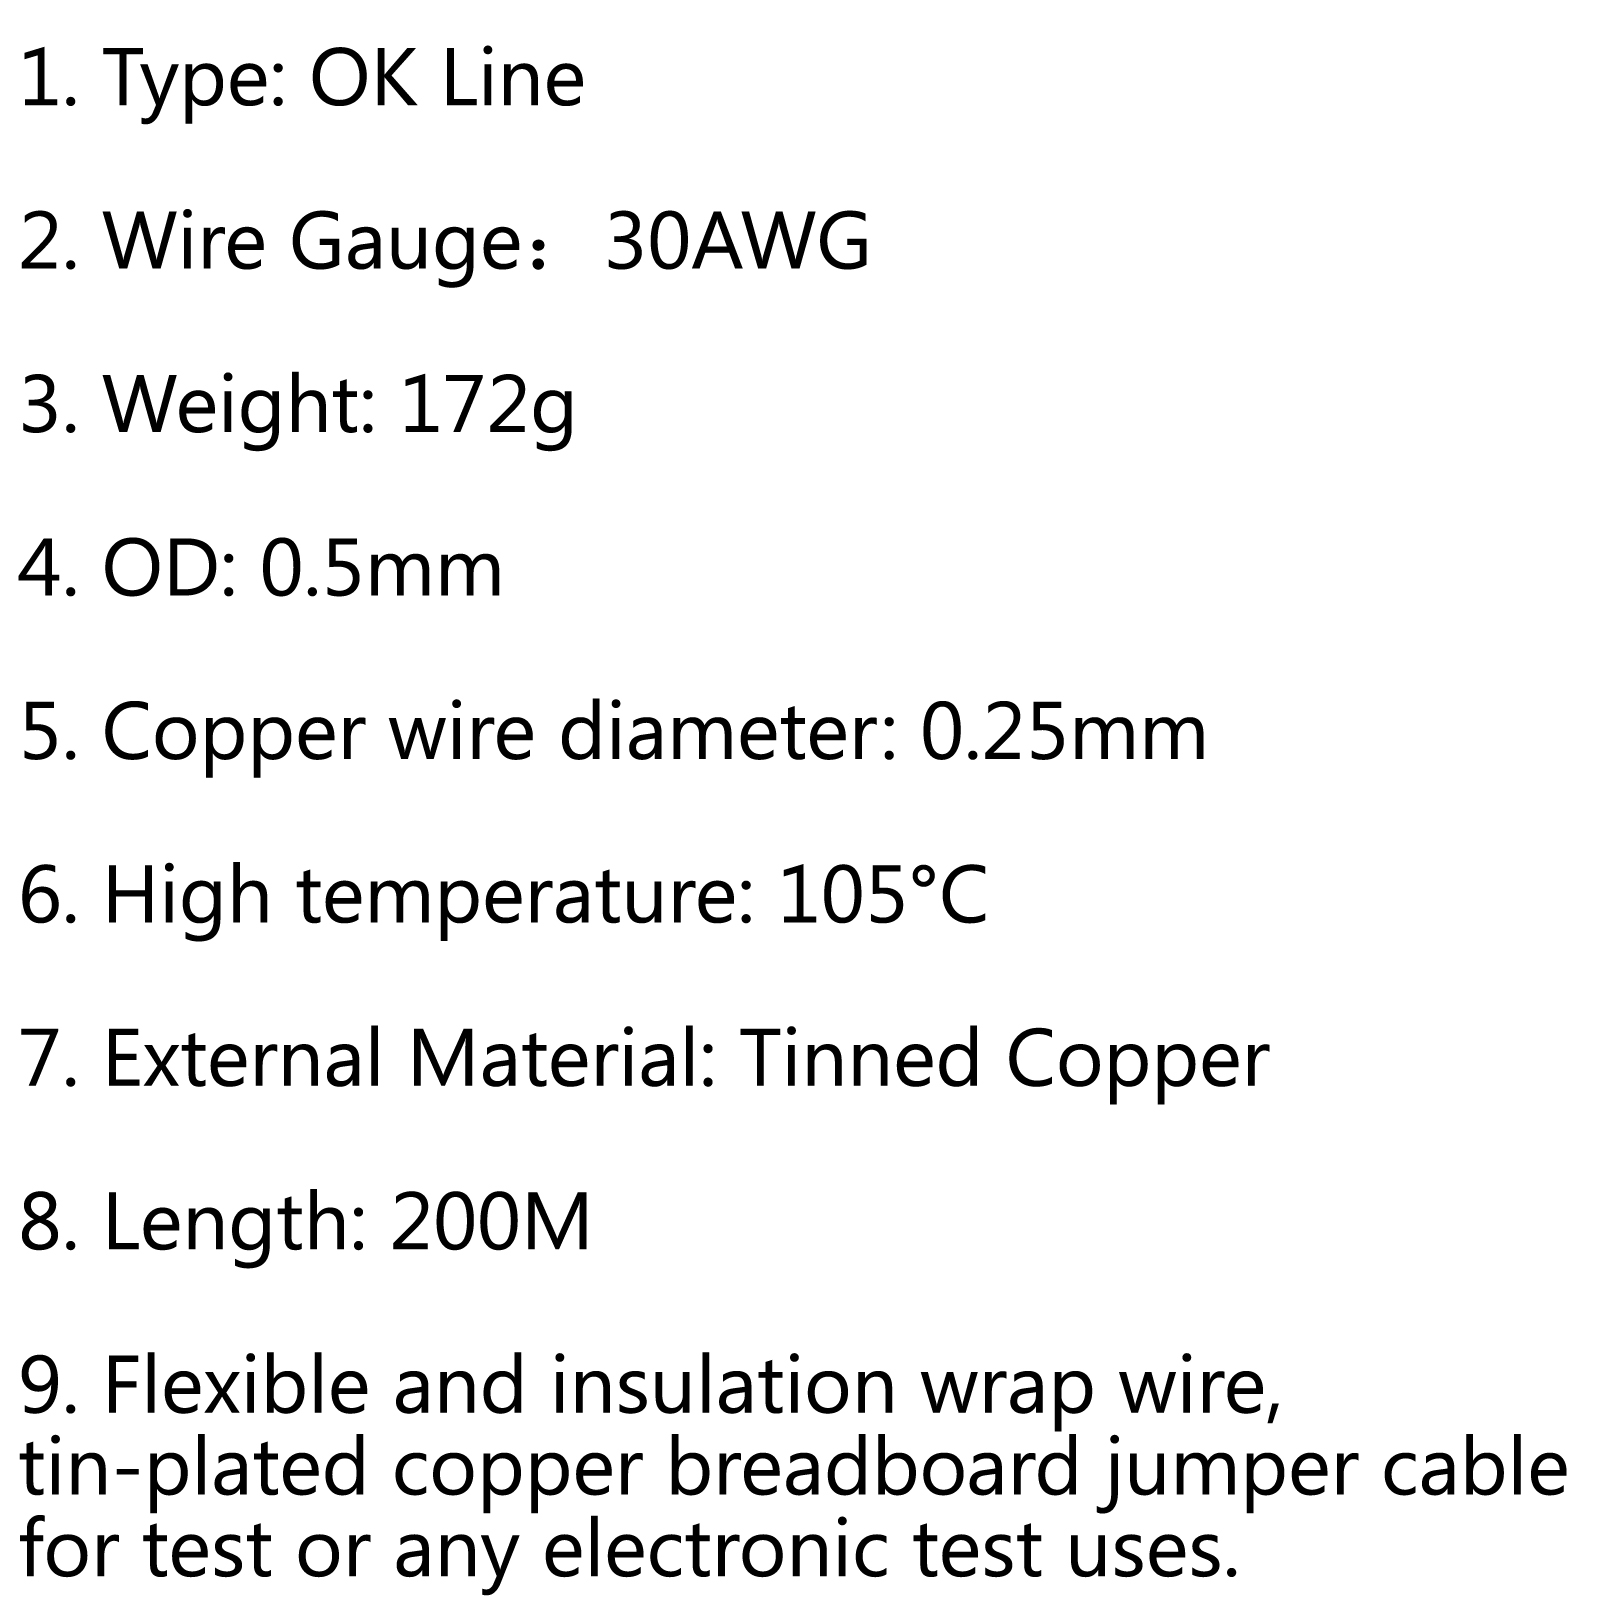 200m 30awg electrical wrapping wire single core ok line airline product shape same as the picture show 1 type ok line 2 wire gauge30awg 3 weight 172g 4 od 05mm 5 copper wire diameter 8 colors keyboard keysfo Choice Image